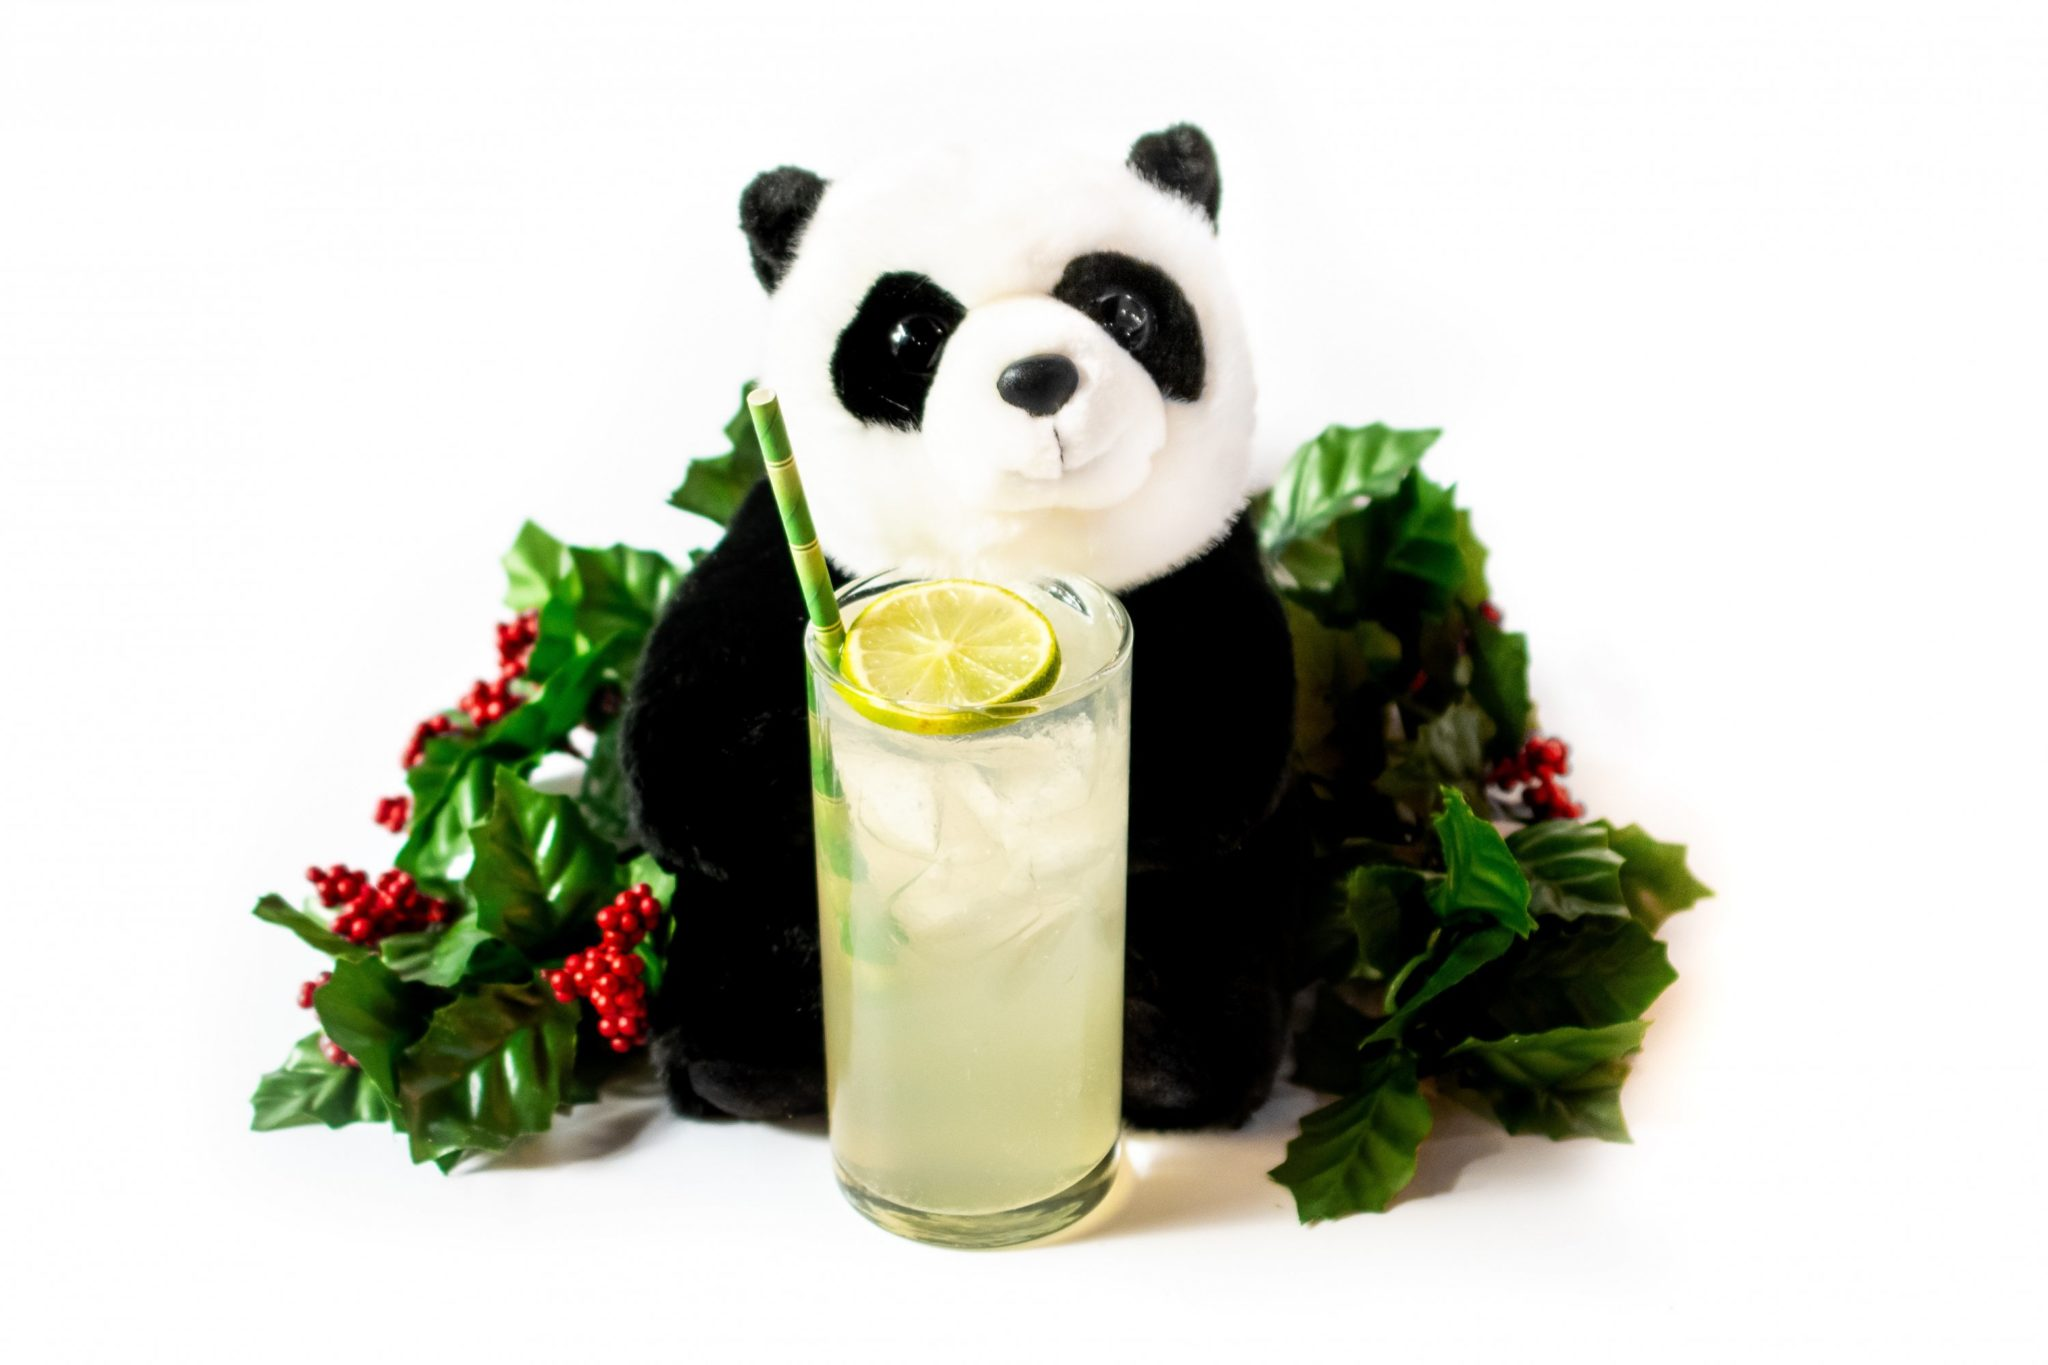 The Santa Bei Bei cocktail. Photograph by Ana Valentin.